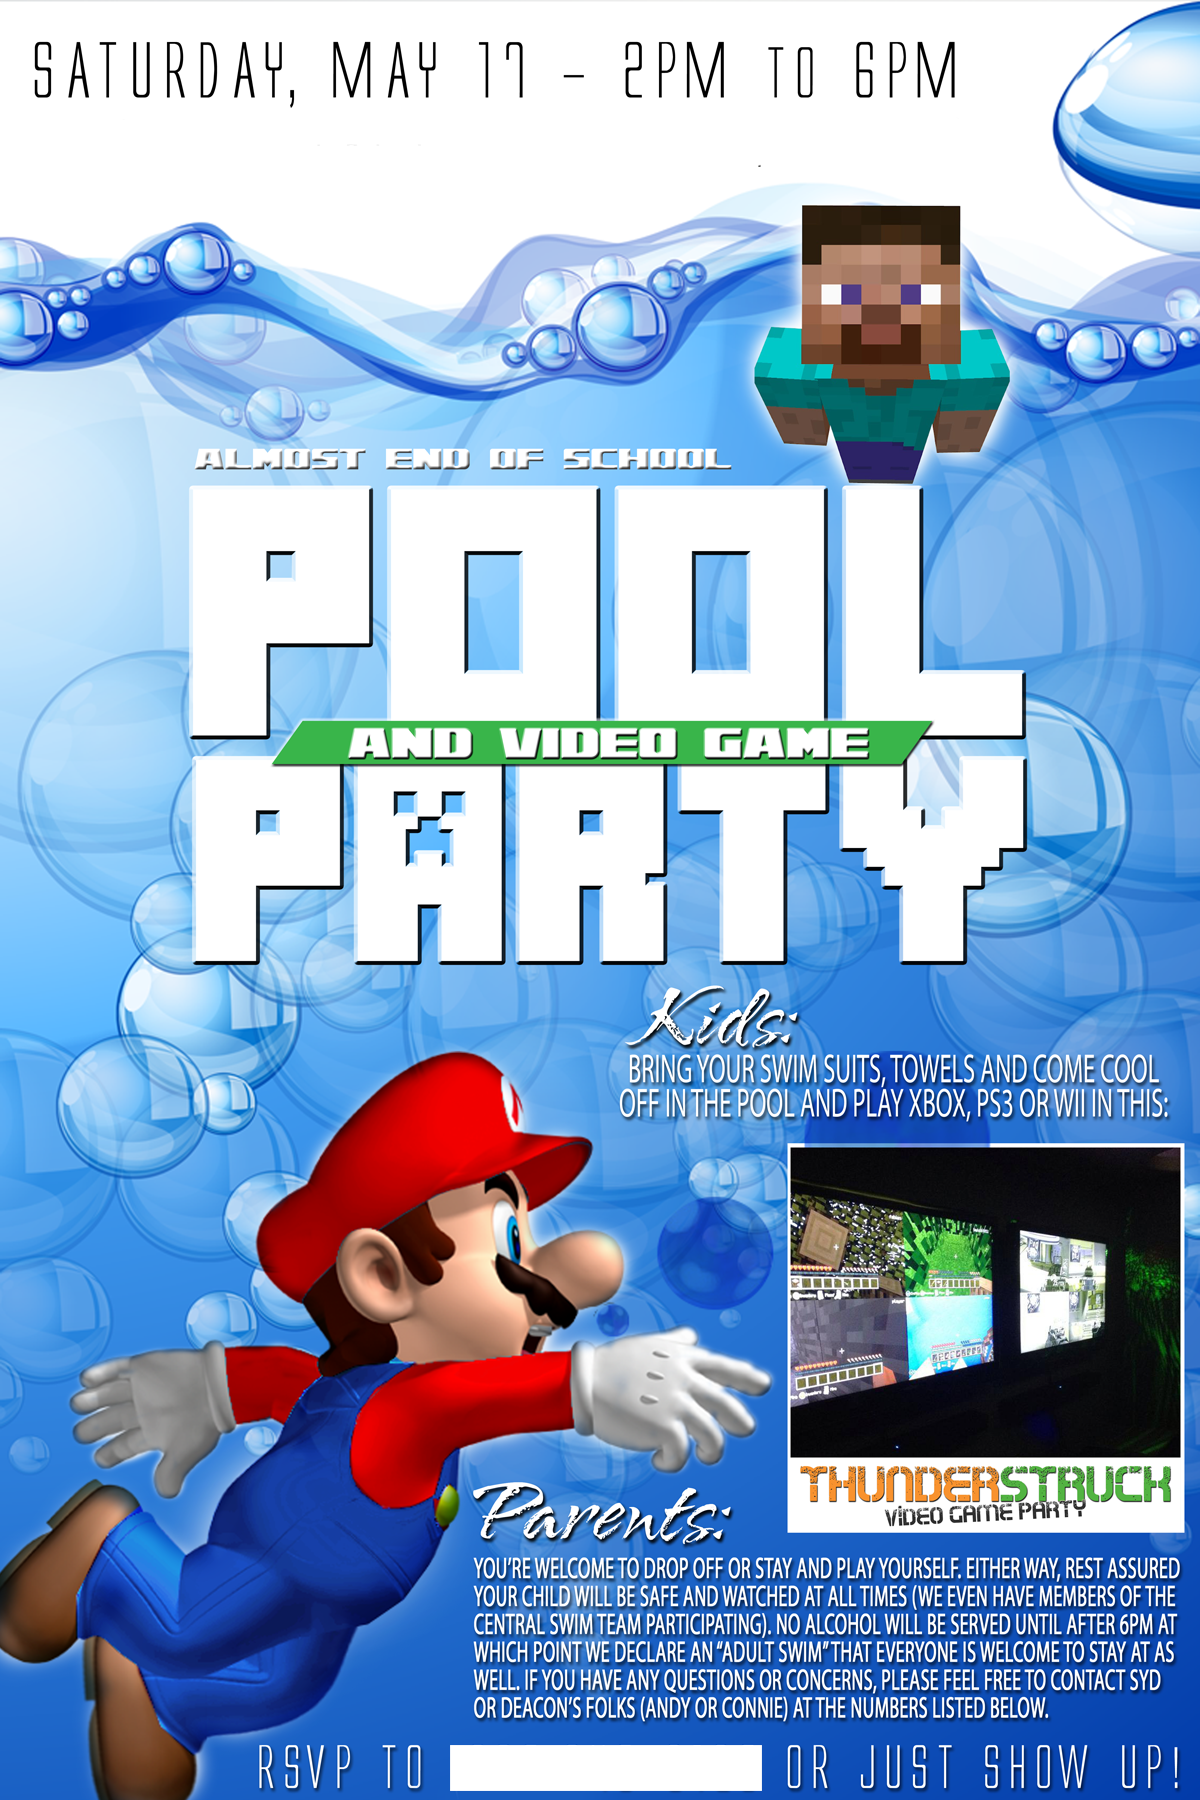 Pool Video Game Party invitation Graphic Design – Video Game Party Invitation